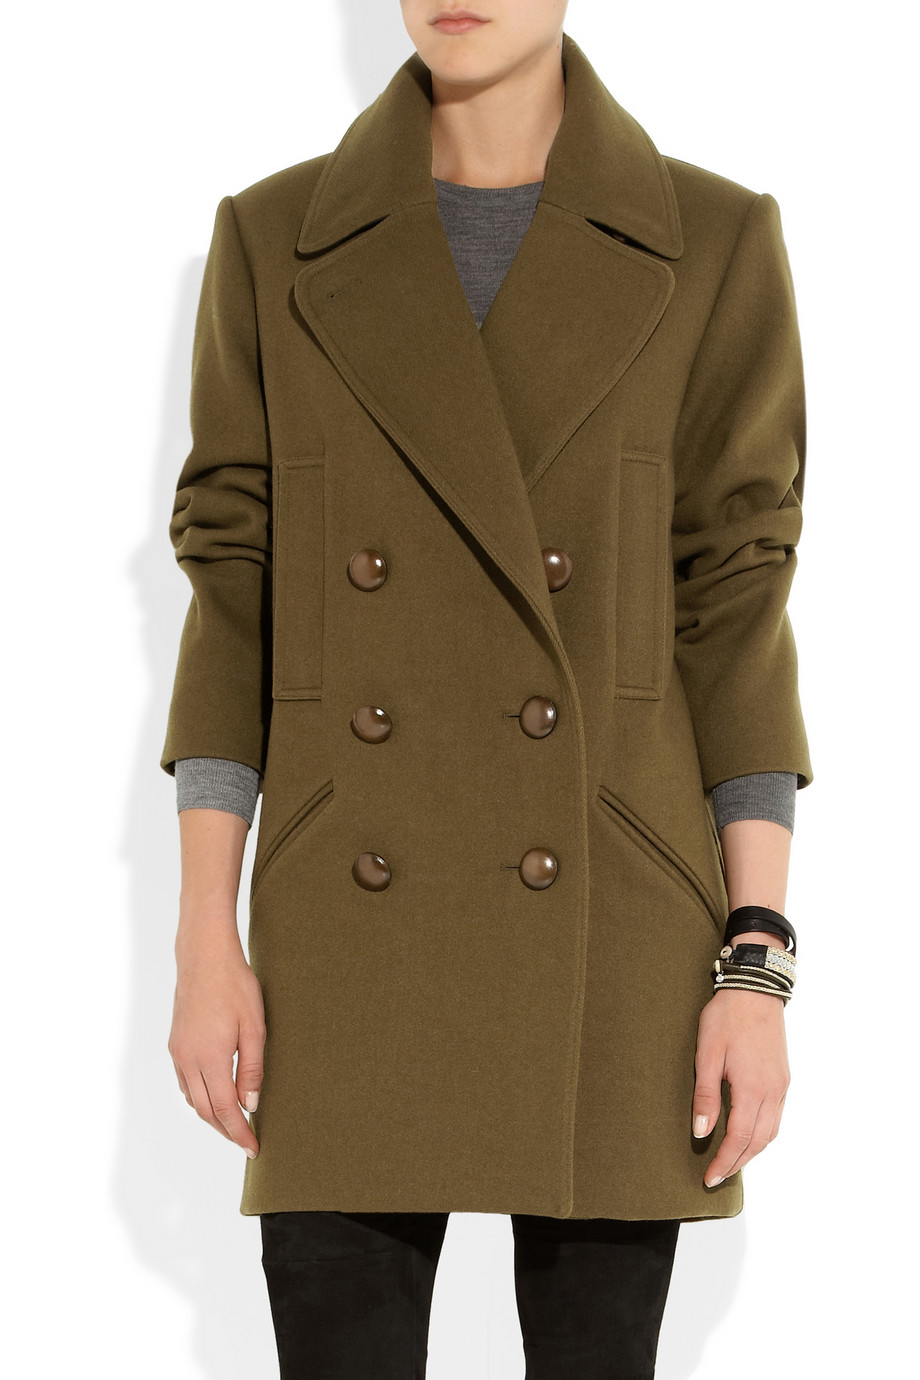 Isabel marant Ziggy Wool-Blend Brushed-Twill Coat in Green | Lyst